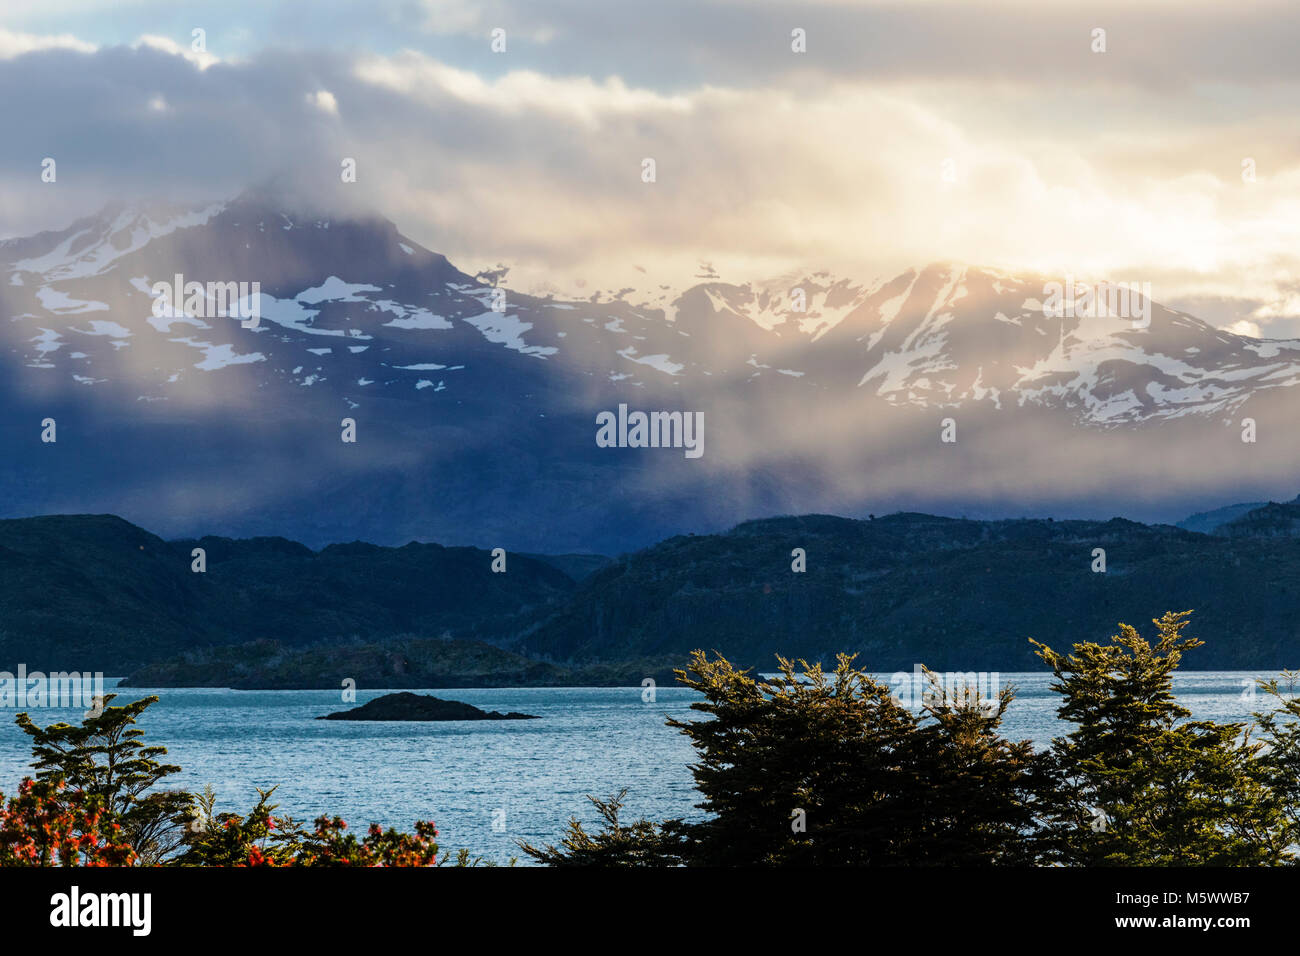 Lago Nordenskjold; Cordillera Paine beyond; view from Refugio Cuernos; Torres del Paine National Park; Chile - Stock Image